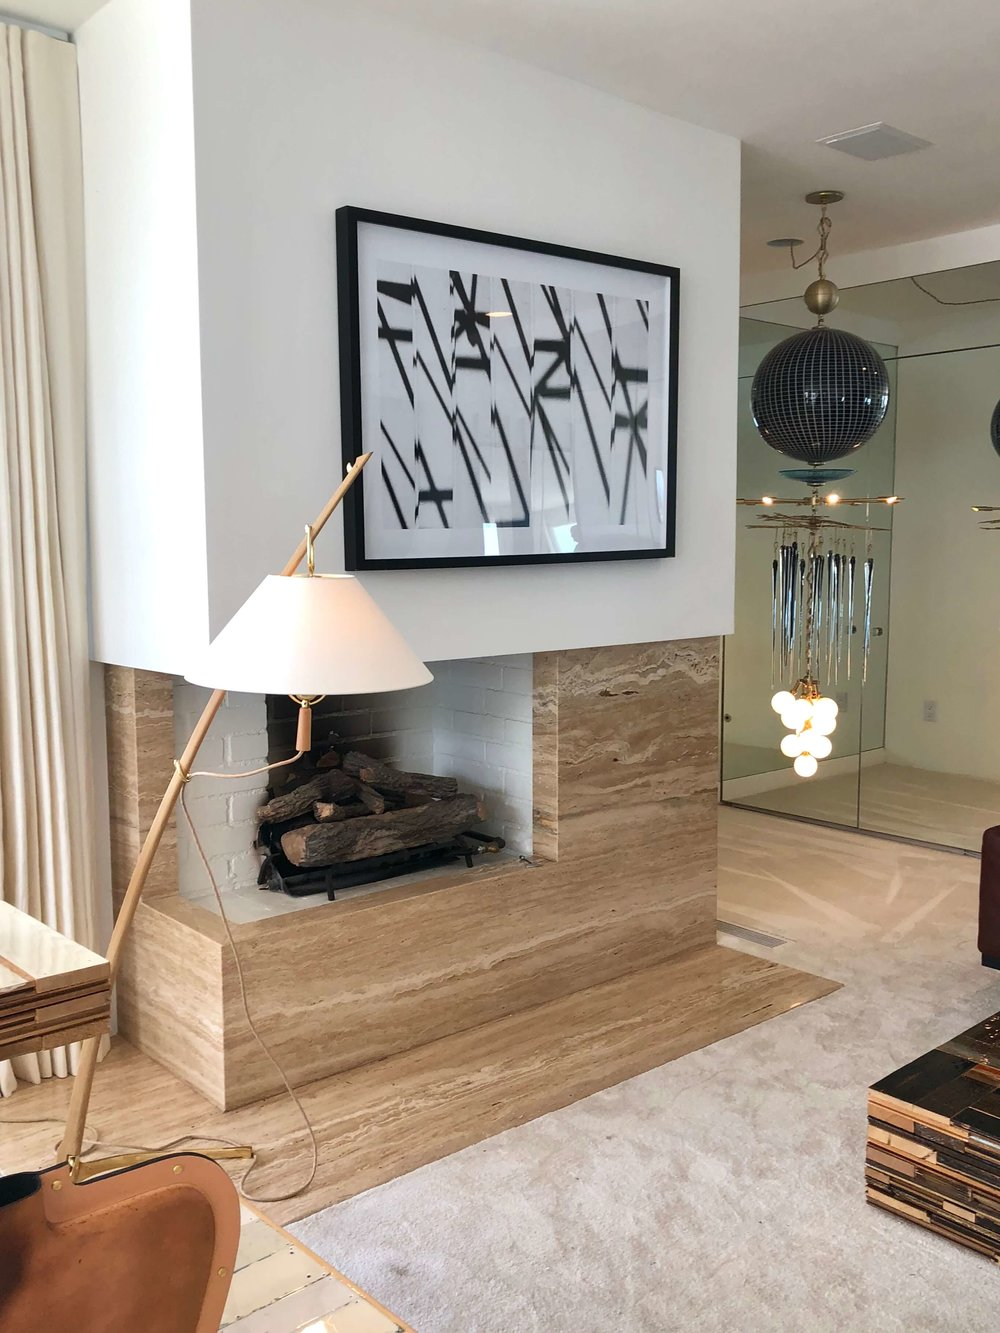 Art, lighting, and home furnishings are all available for purchase at Casa Perfect, Beverly Hills, CA #lighting #chandelier #fireplace #art